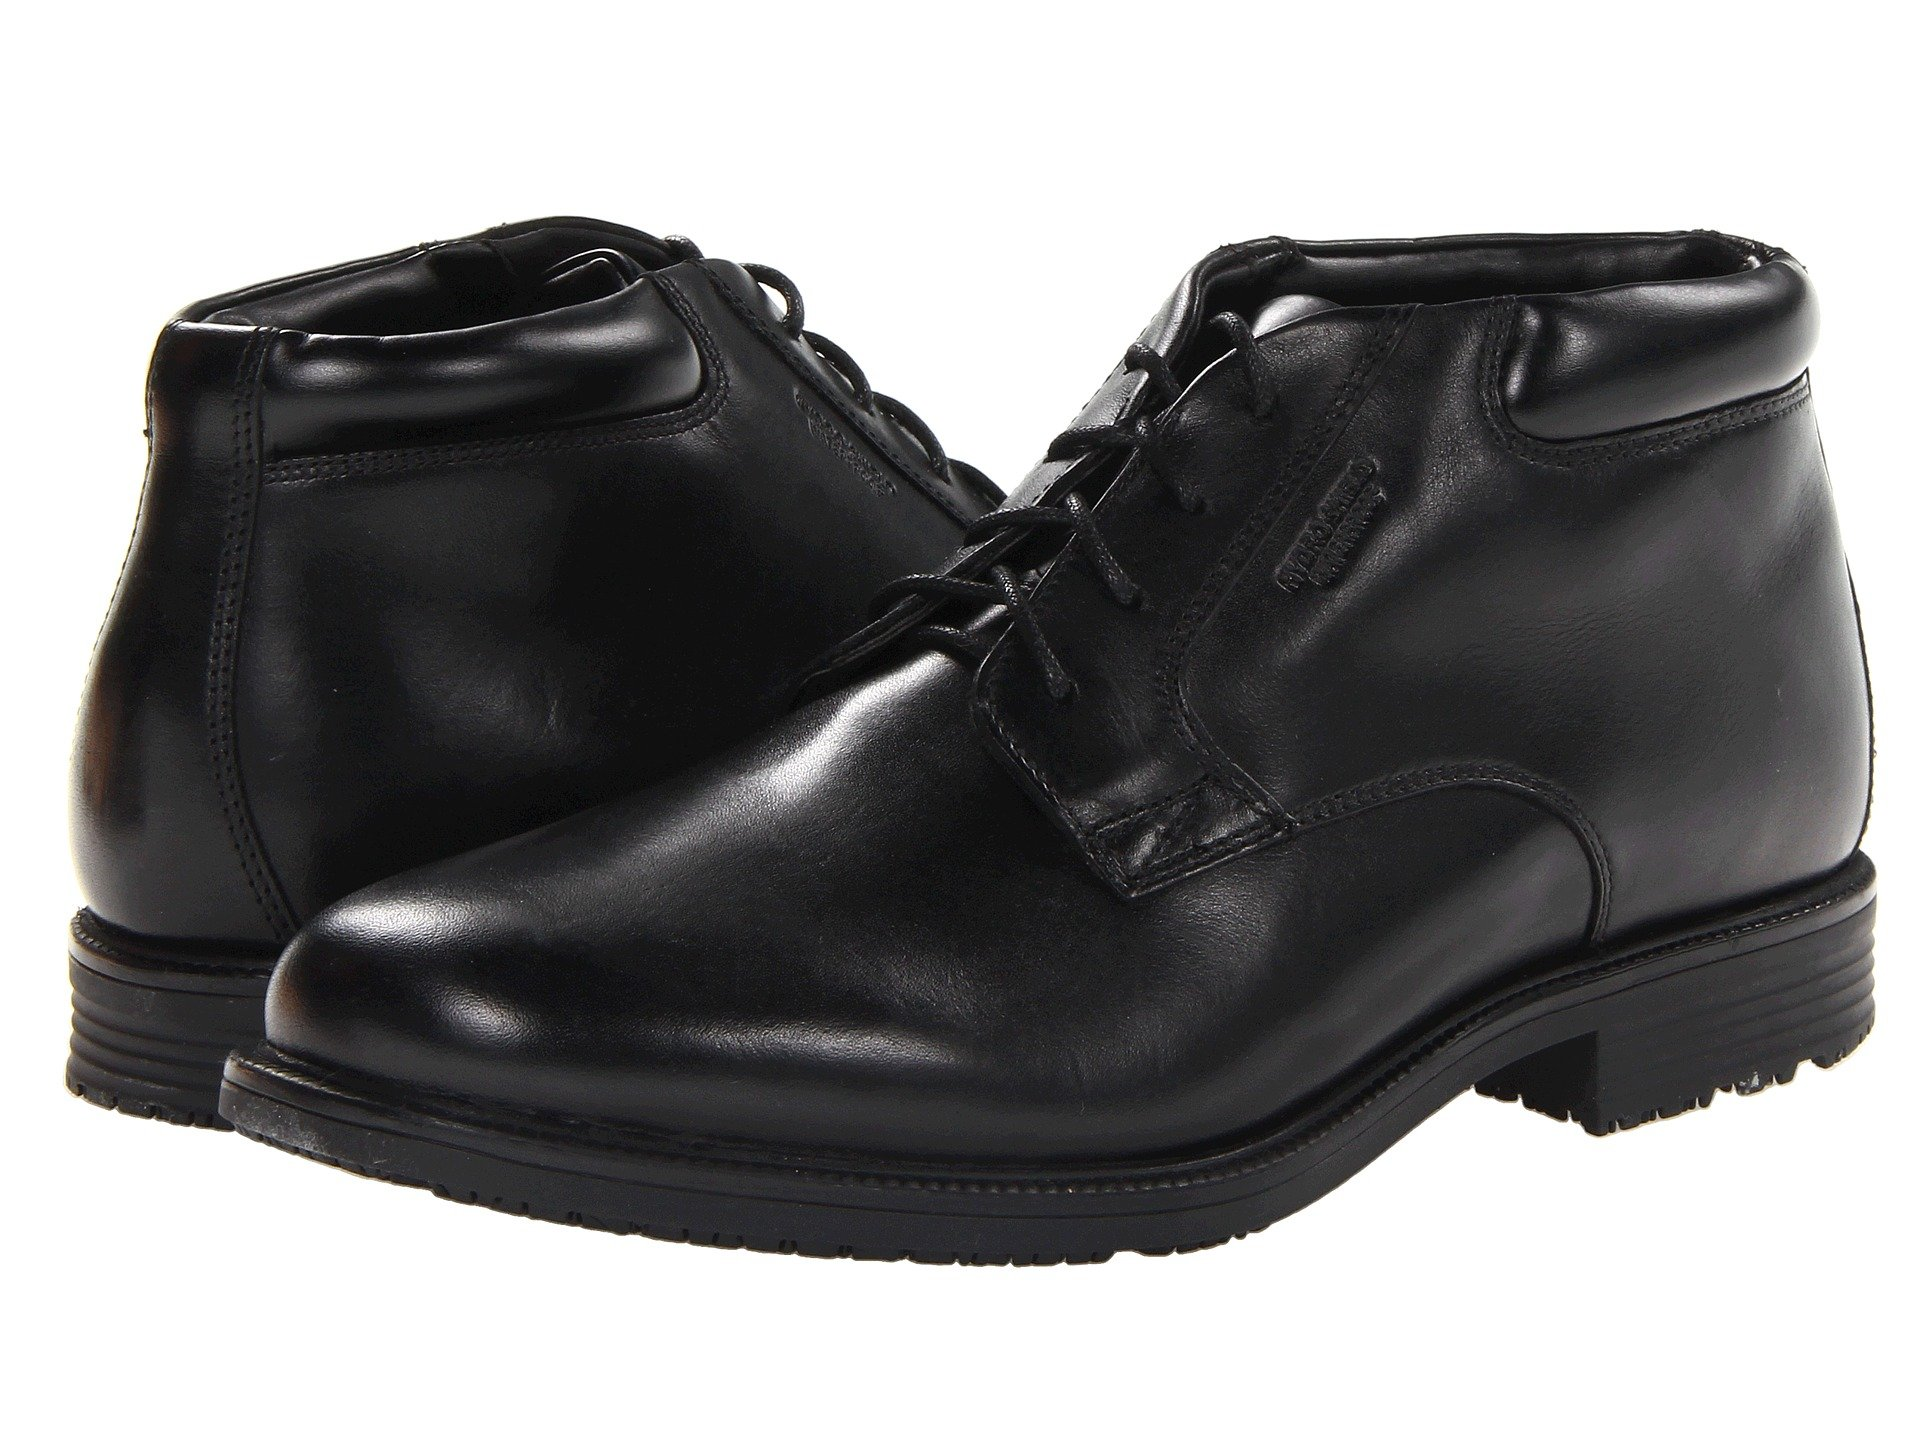 6ba2221bce863 Men's Rockport Boots + FREE SHIPPING   Shoes   Zappos.com